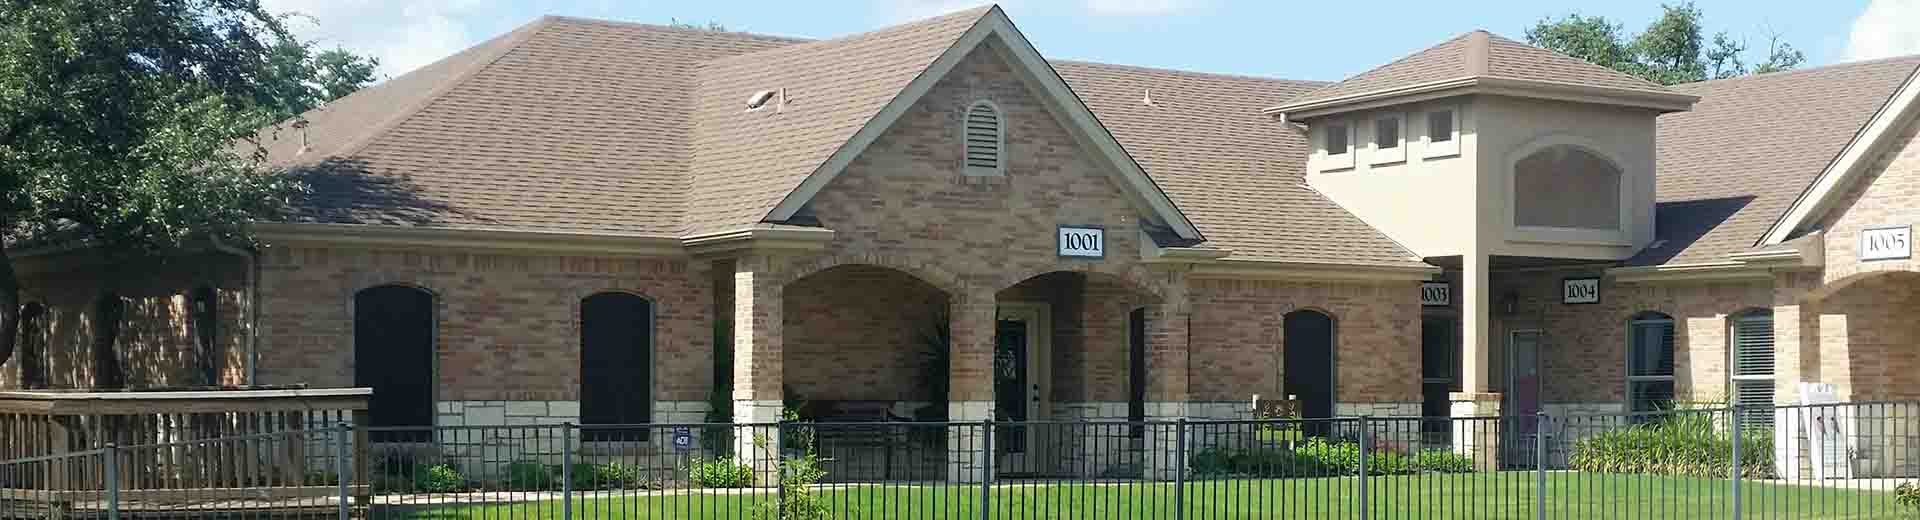 Trade Winds Dental Office Exterior - Georgetown, TX